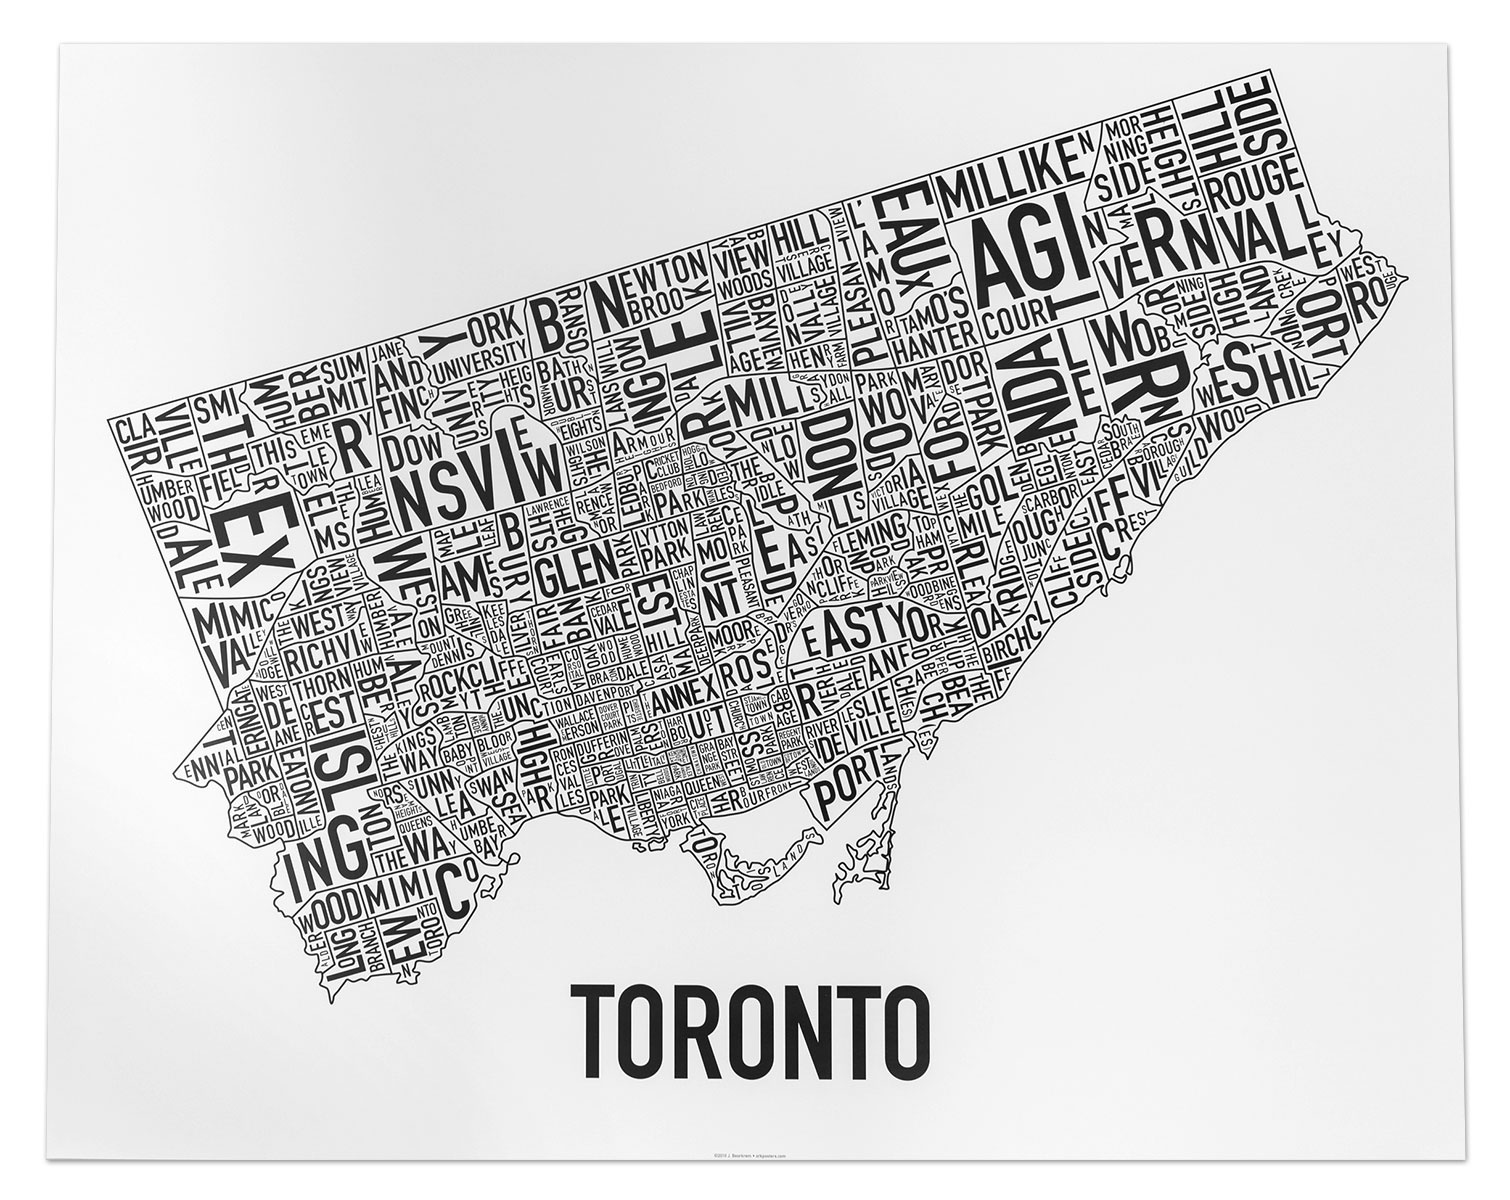 Toronto Neighborhood Map Posters & Prints - Display your of ... on posters of maps, posters of language, posters of movies, posters of organizations, posters of nature, posters of animals, posters of cityscapes, posters of culture, posters of travel, posters of destinations, posters of communities, posters of libraries, posters of companies, posters of technology, posters of media, posters of love, posters of women's suffrage, posters of oceans, posters of space, posters of science,